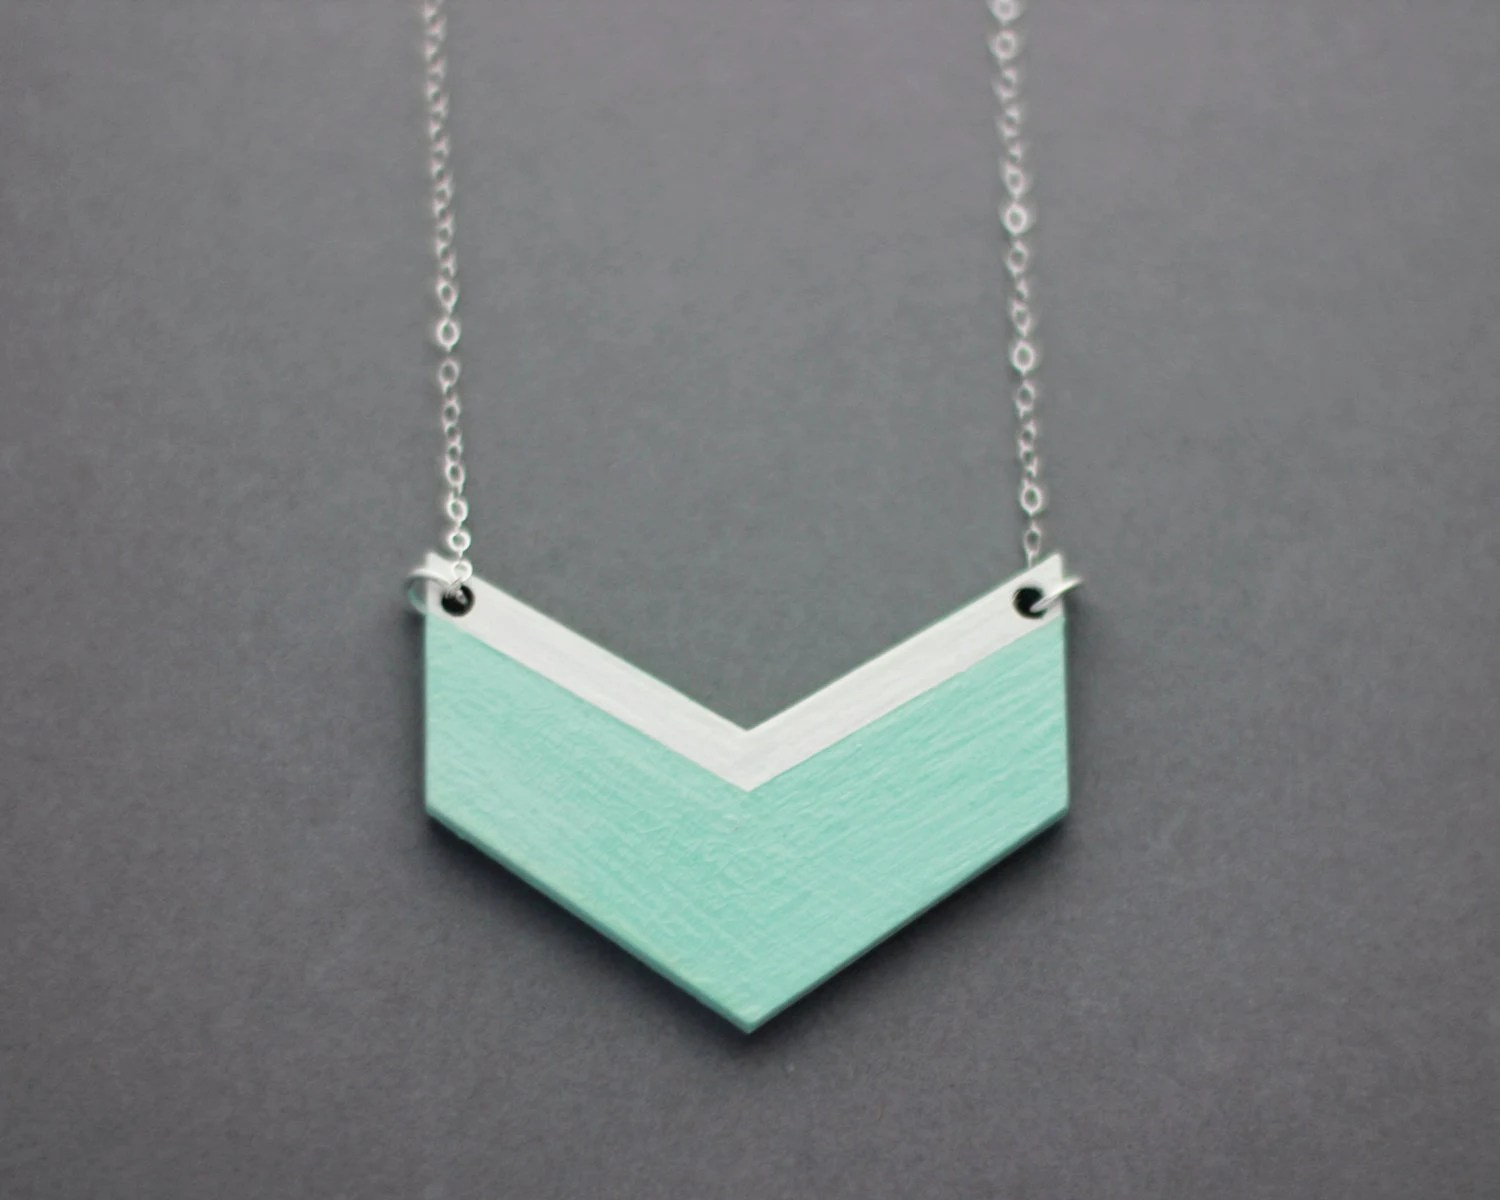 Small Wooden Chevron Necklace (Mint - White)  Modern Handmade Jewellery - FawnAndRose